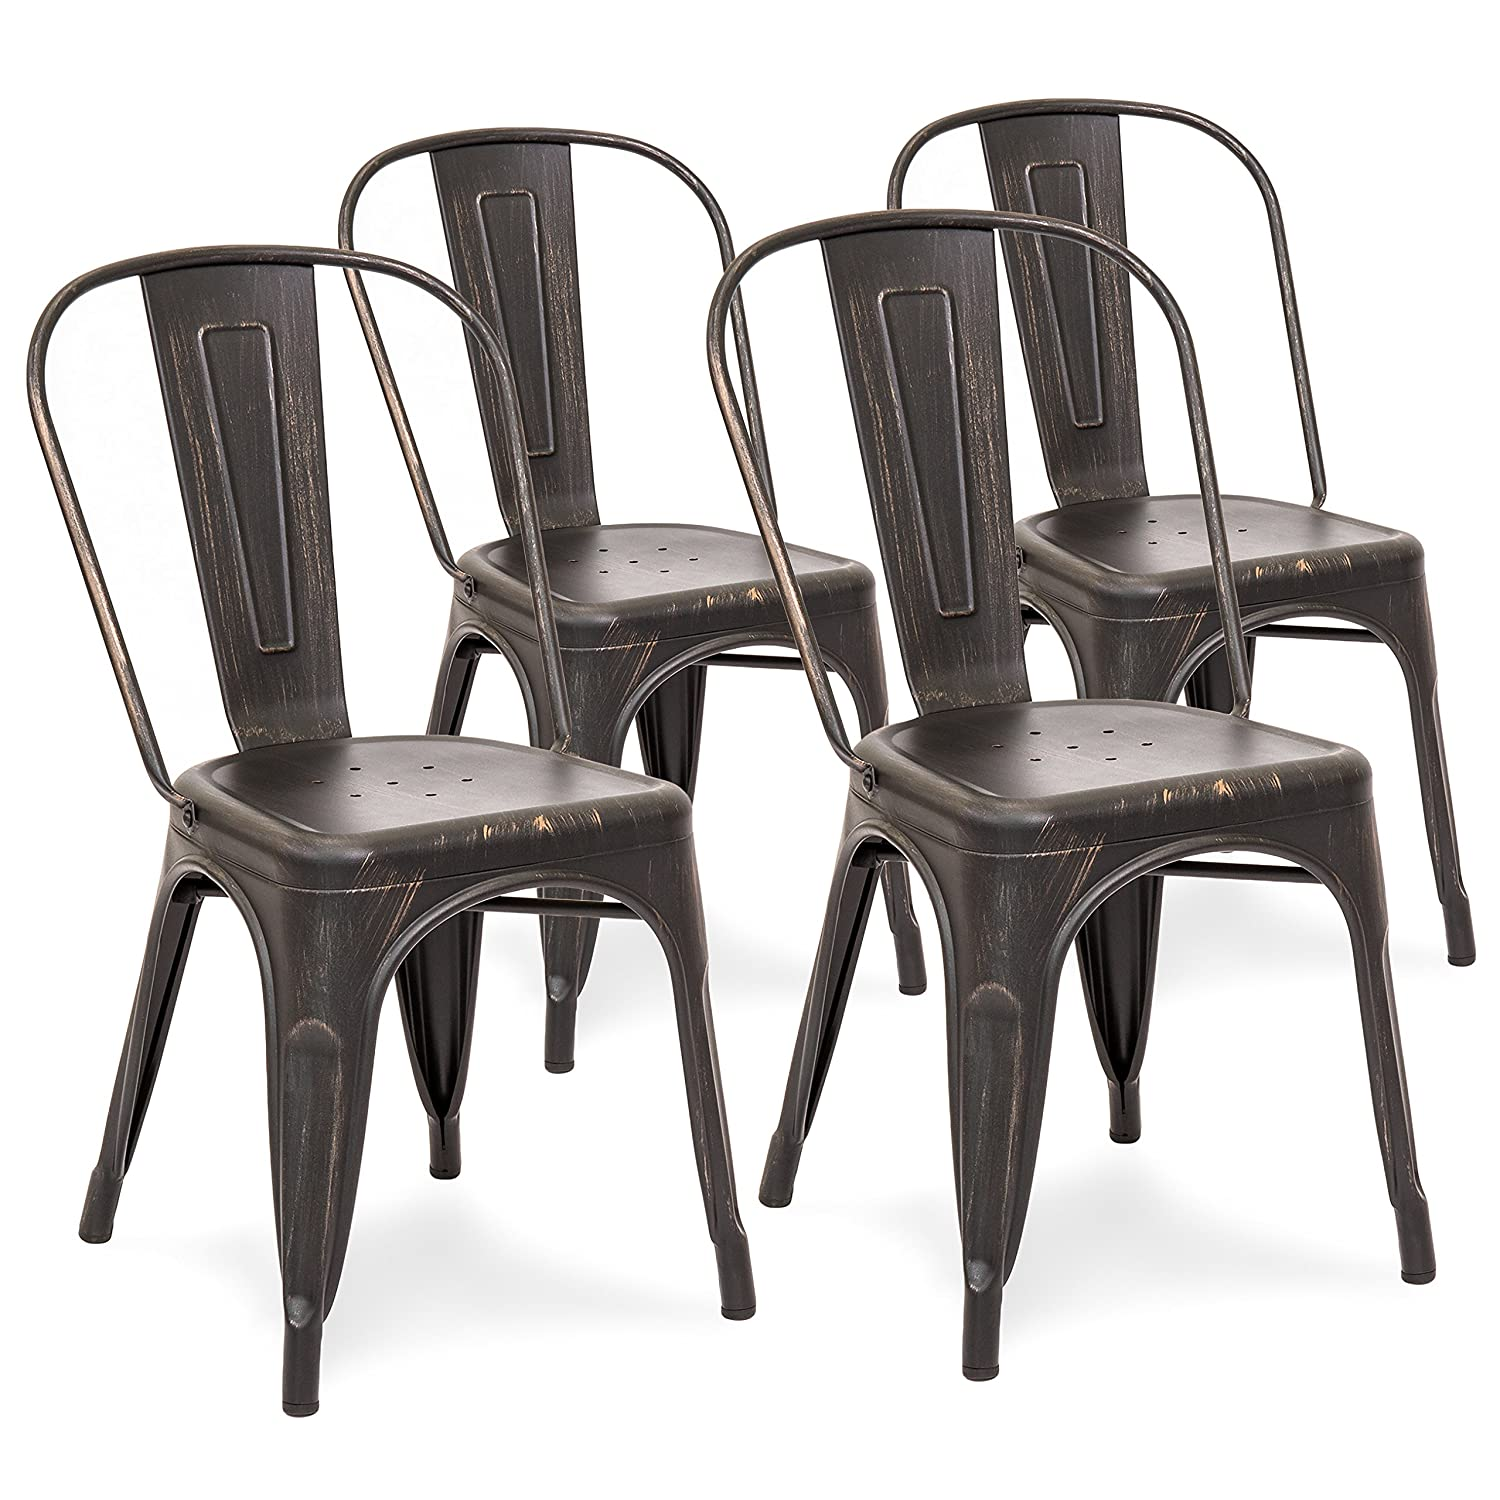 Amazon com best choice products set of 4 distressed industrial metal dining side chairs bronzed black chairs